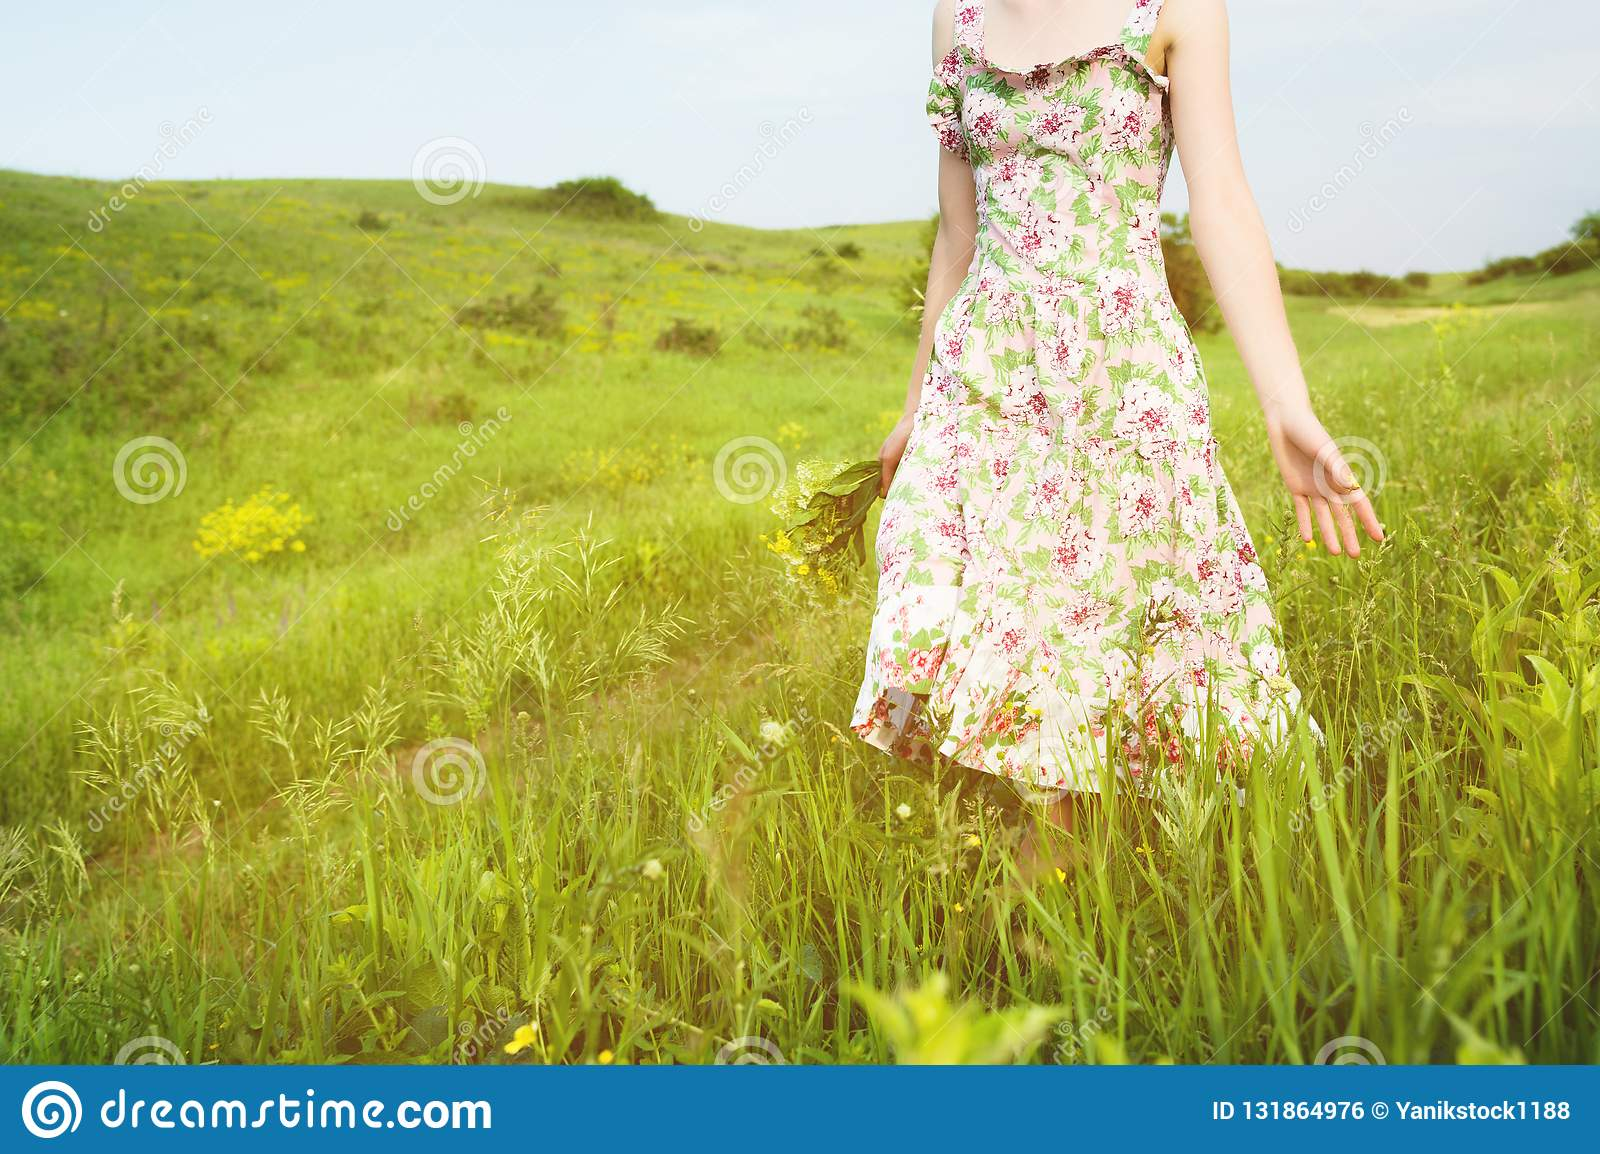 Close-up to the shoulders from below a young girl with a bouquet of wild flowers in her hand walks along a country road